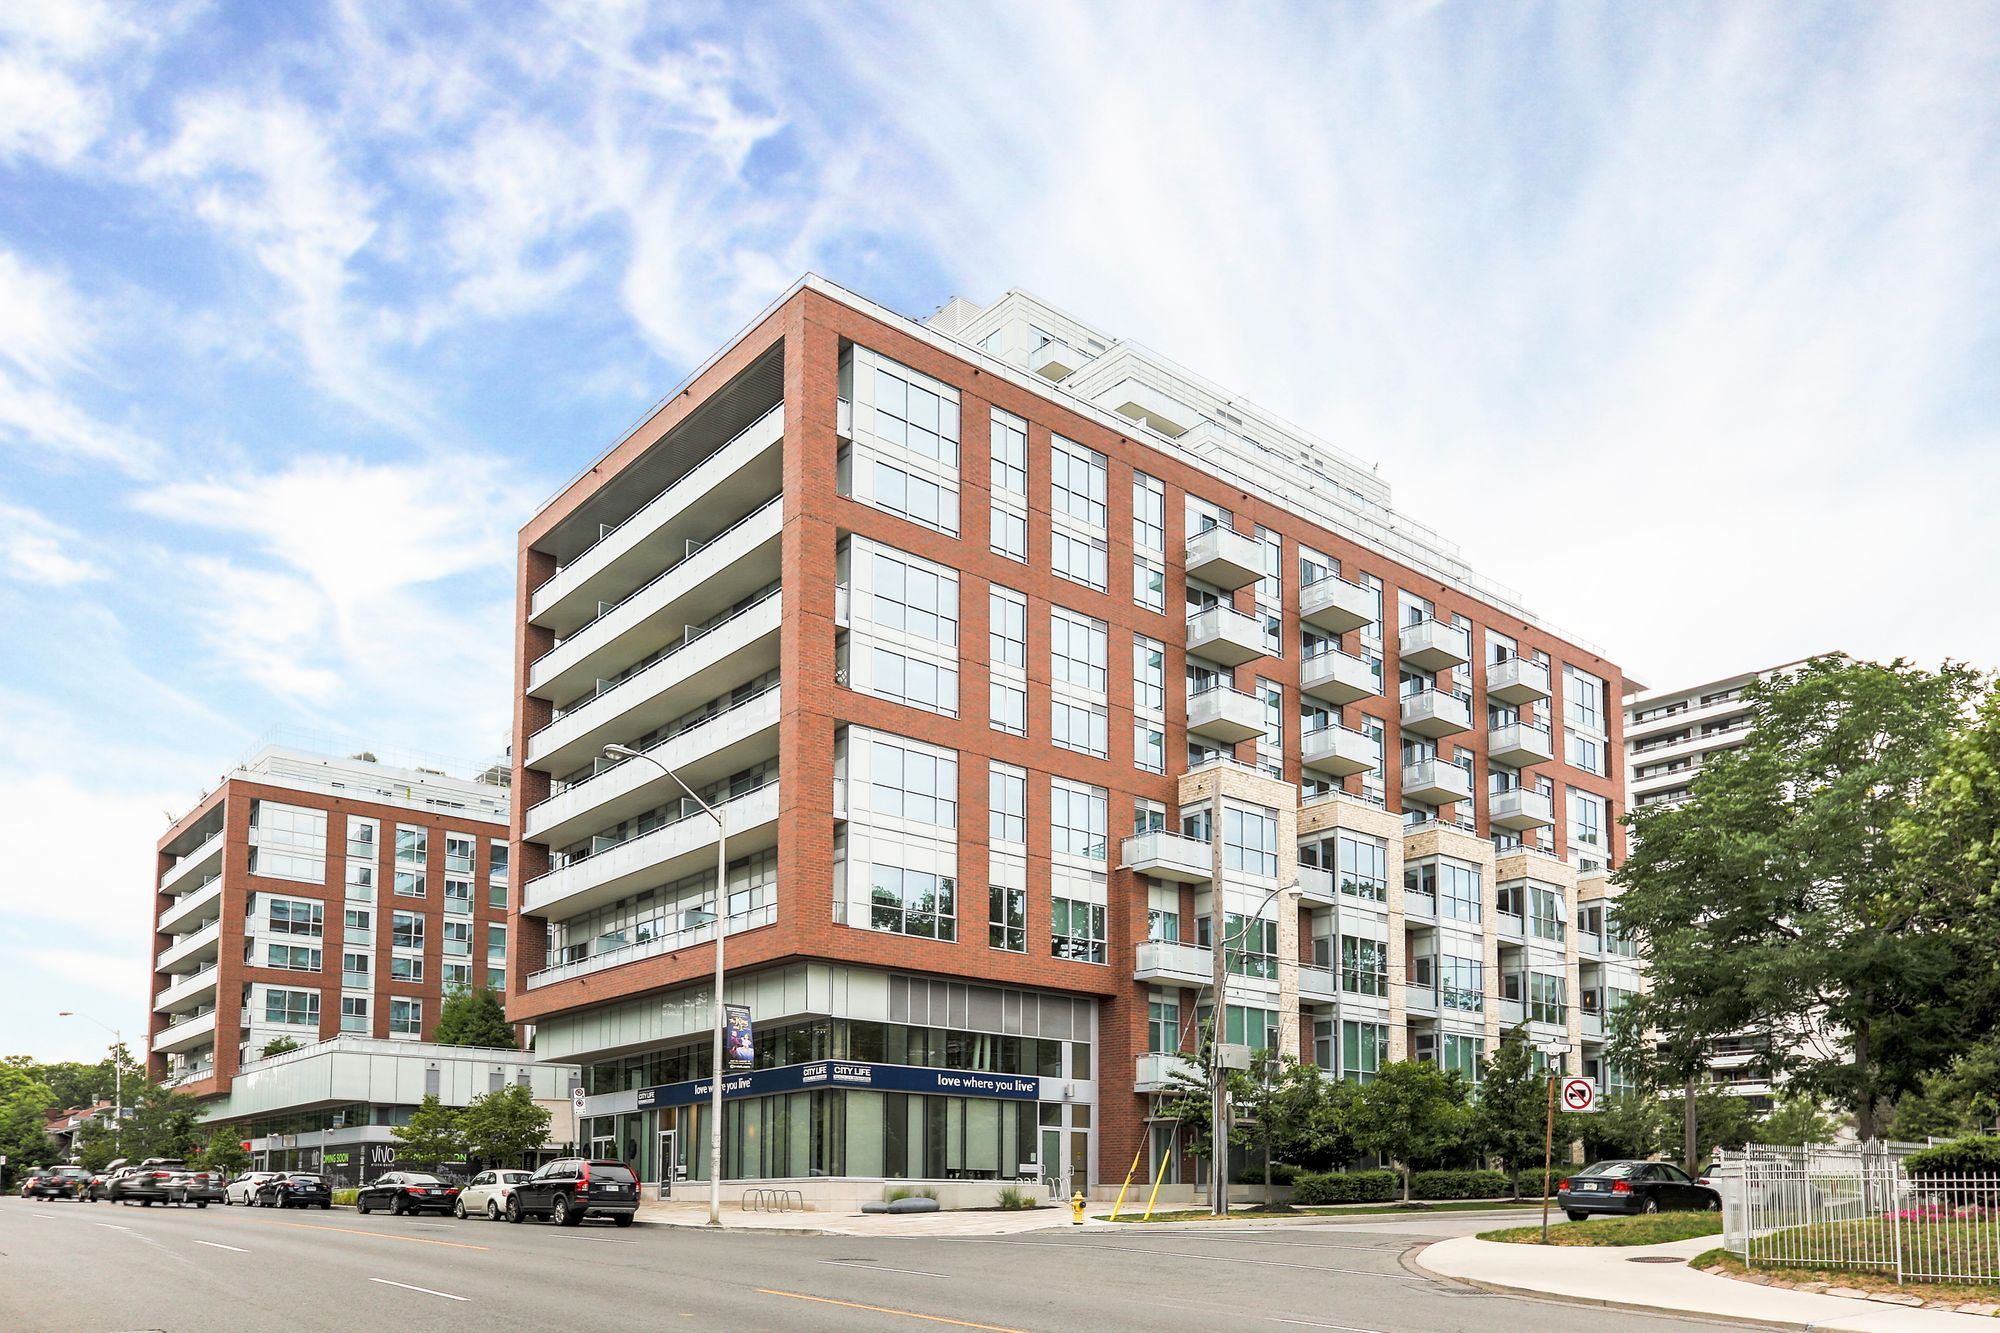 High Park Residences at 1830 Bloor St W. This condo is located in  West End, Toronto - image #2 of 8 by Strata.ca